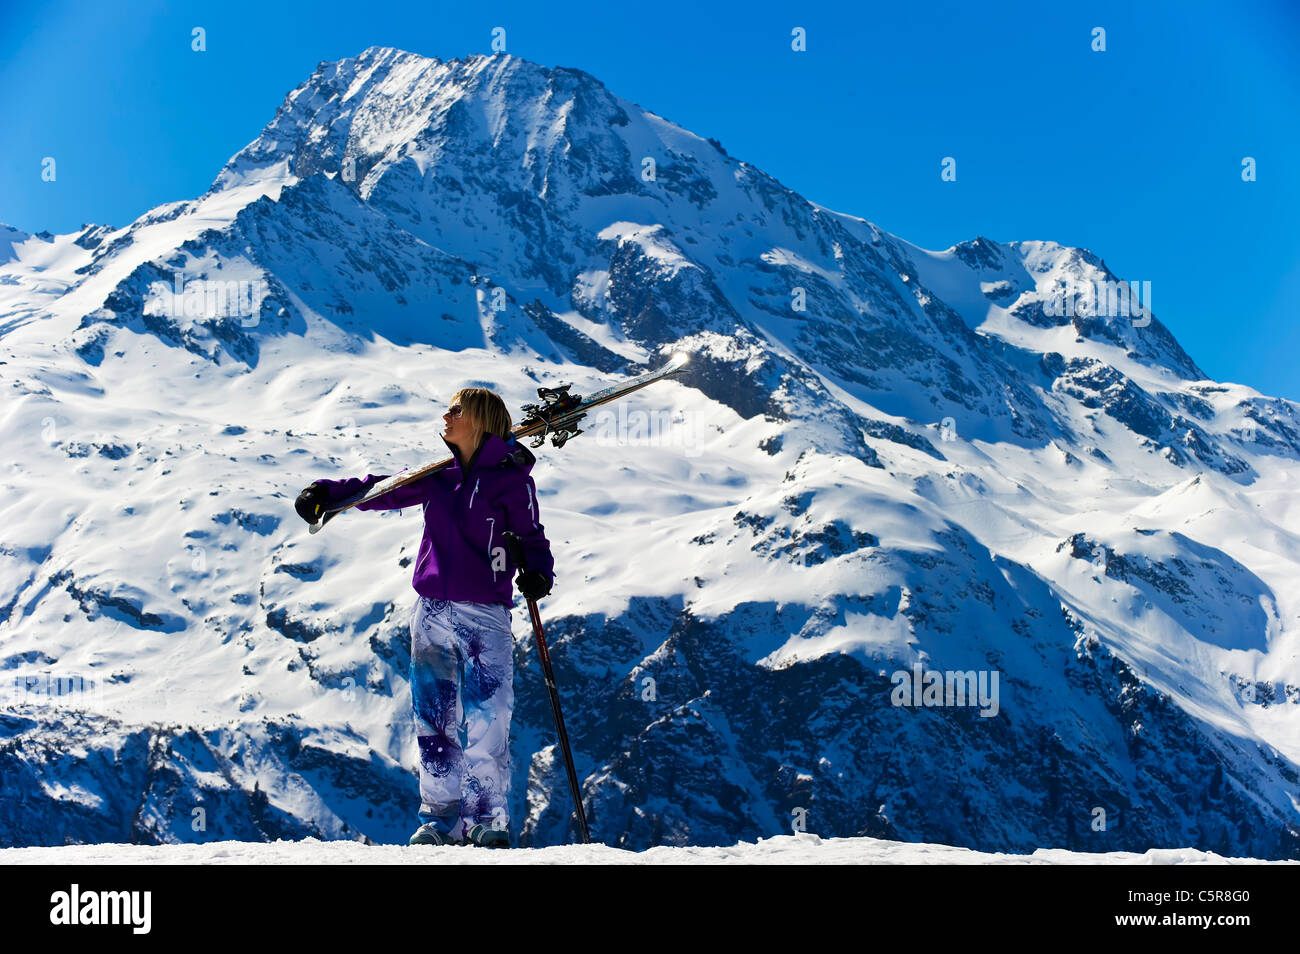 A skier looks out of the mountains and glaciers. - Stock Image